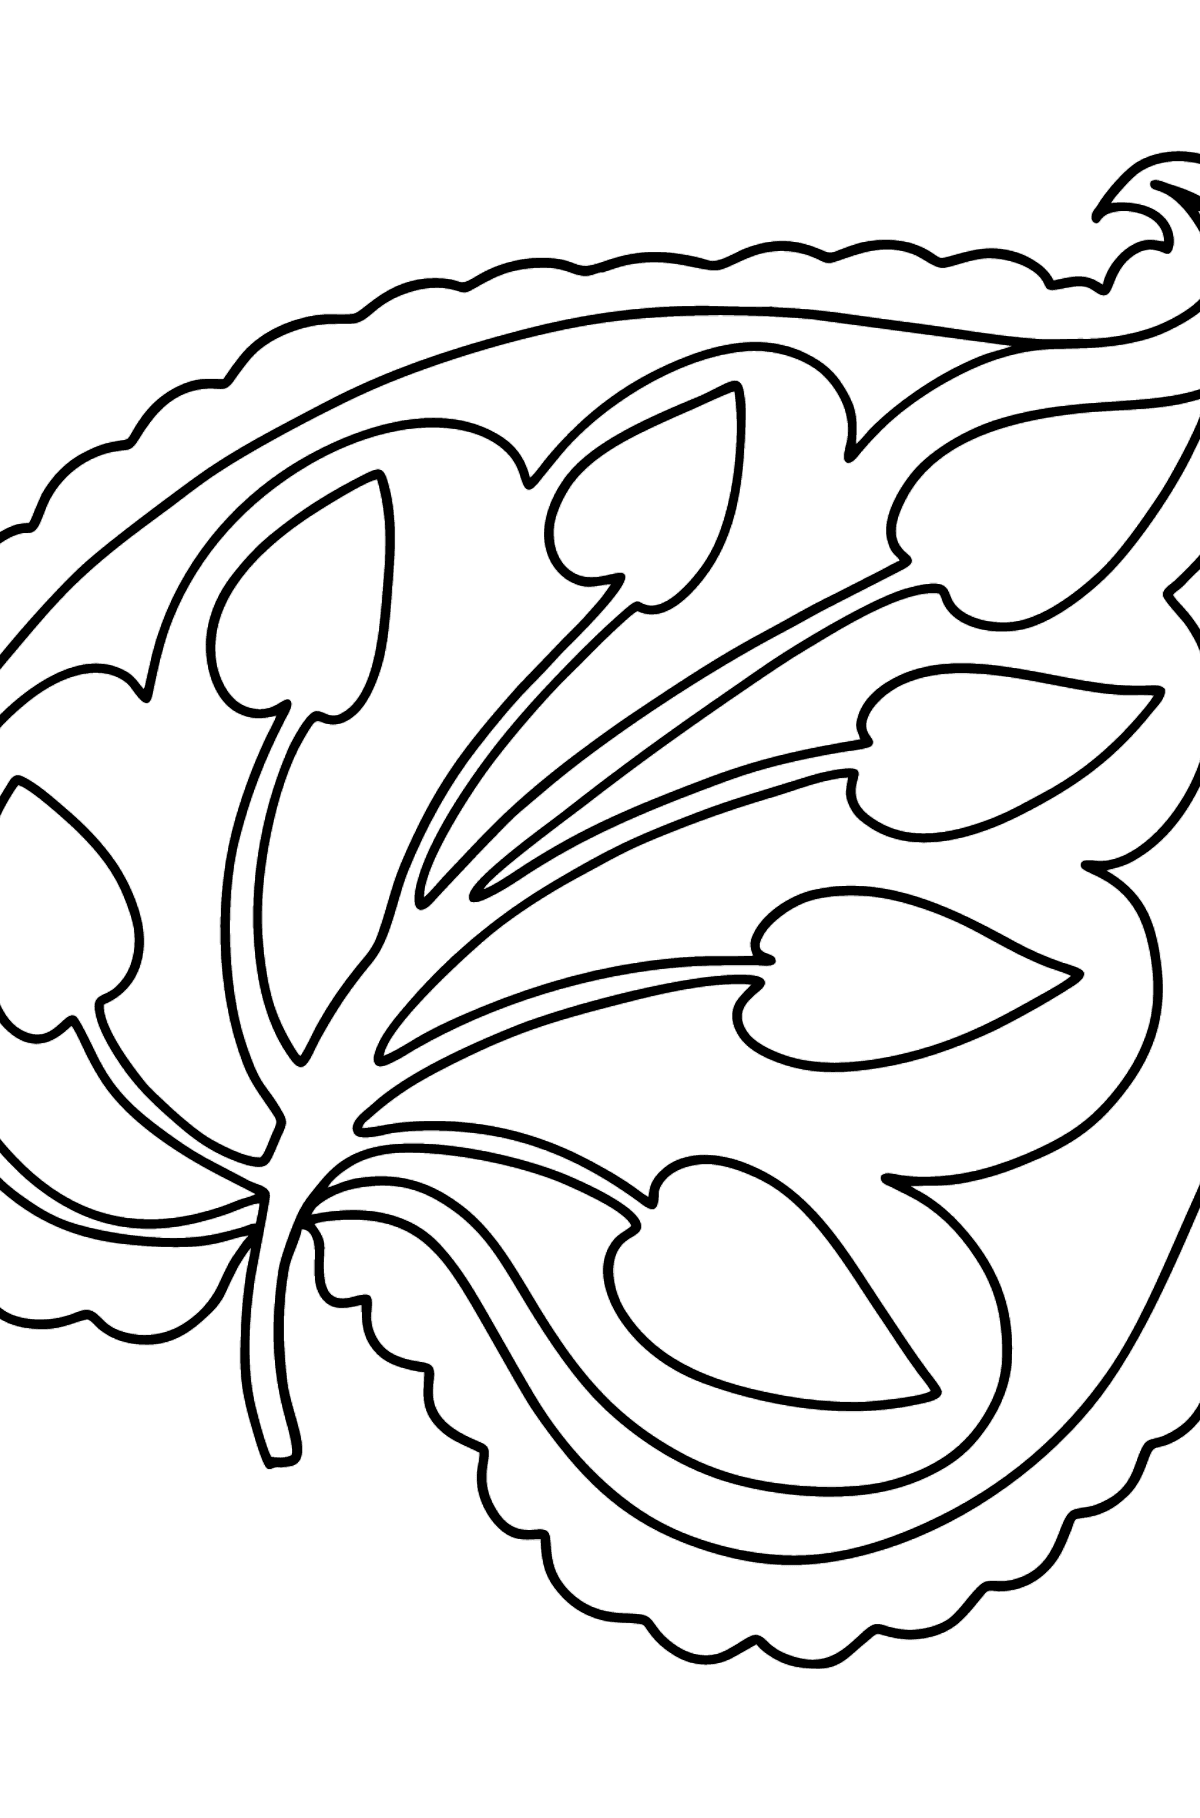 King's Leaf coloring page - Coloring Pages for Kids